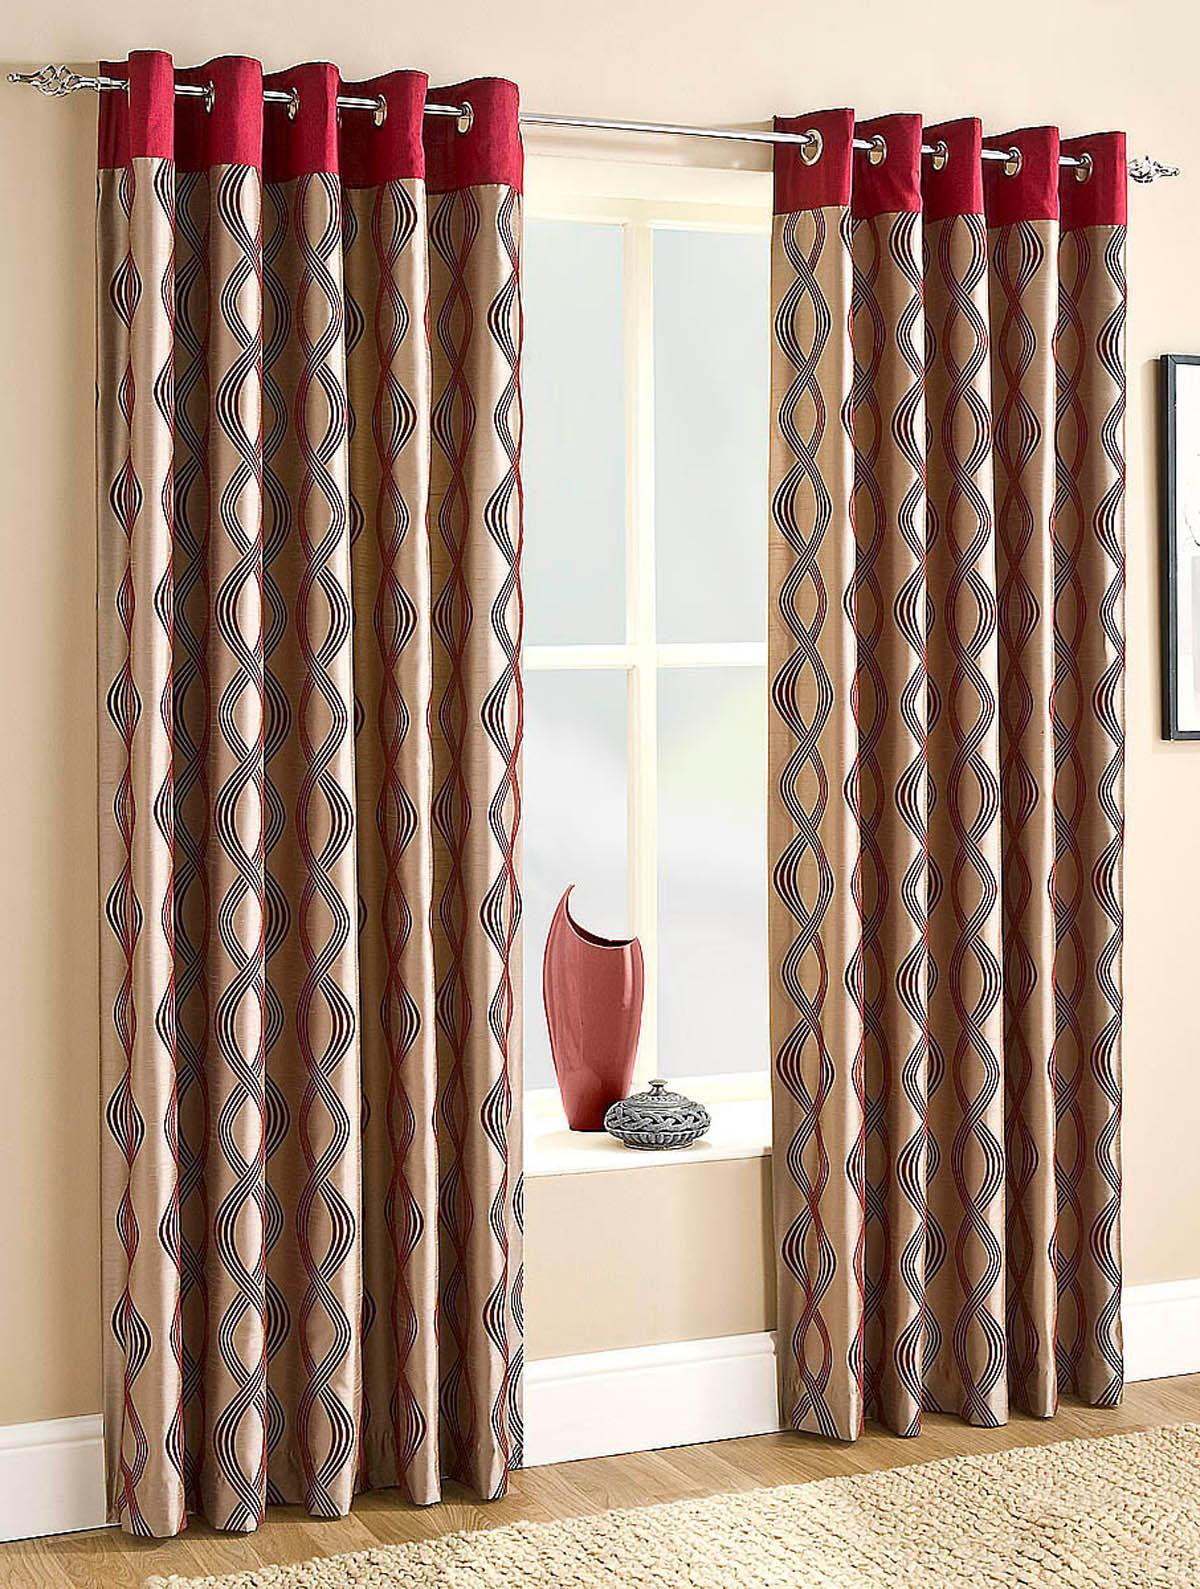 Cheap red curtains - Campania Lined Eyelet Curtains Red Readymade Curtains Uk Delivery